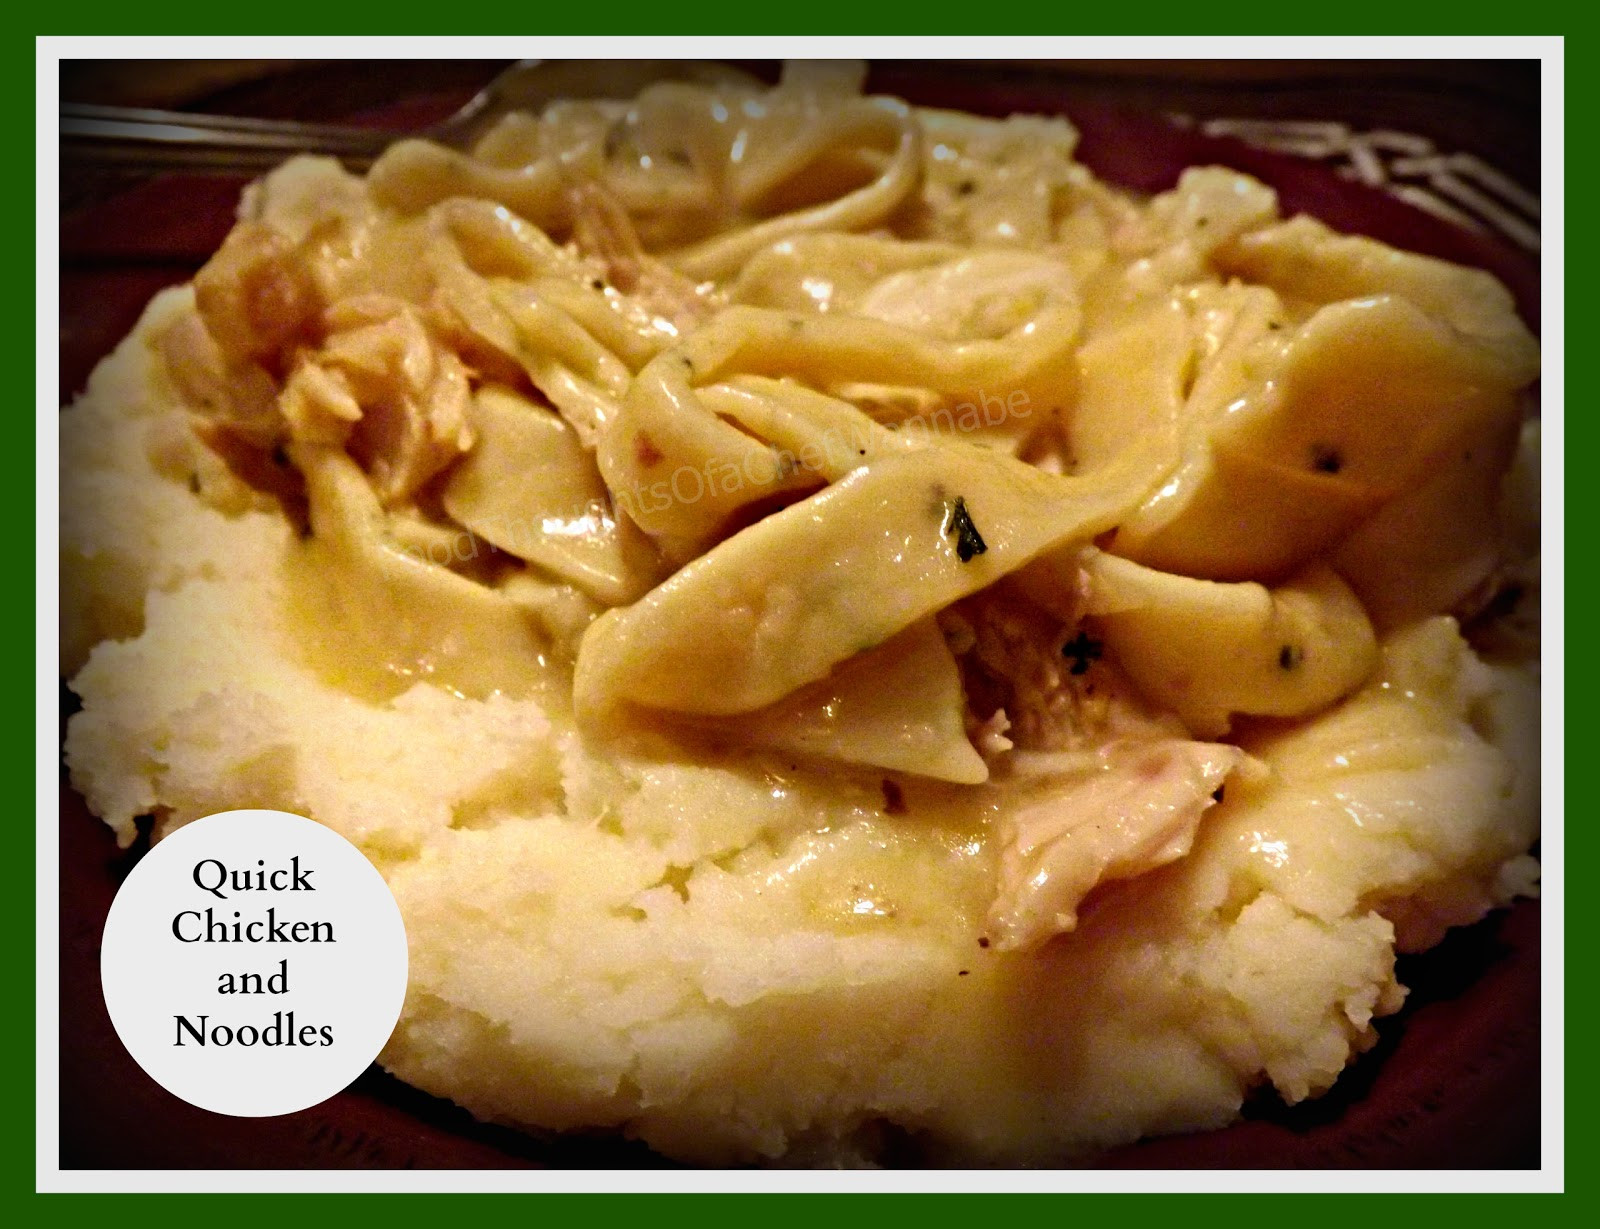 Chicken And Noodles Over Mashed Potatoes  FoodThoughts aChefWannabe Chicken and Noodles over